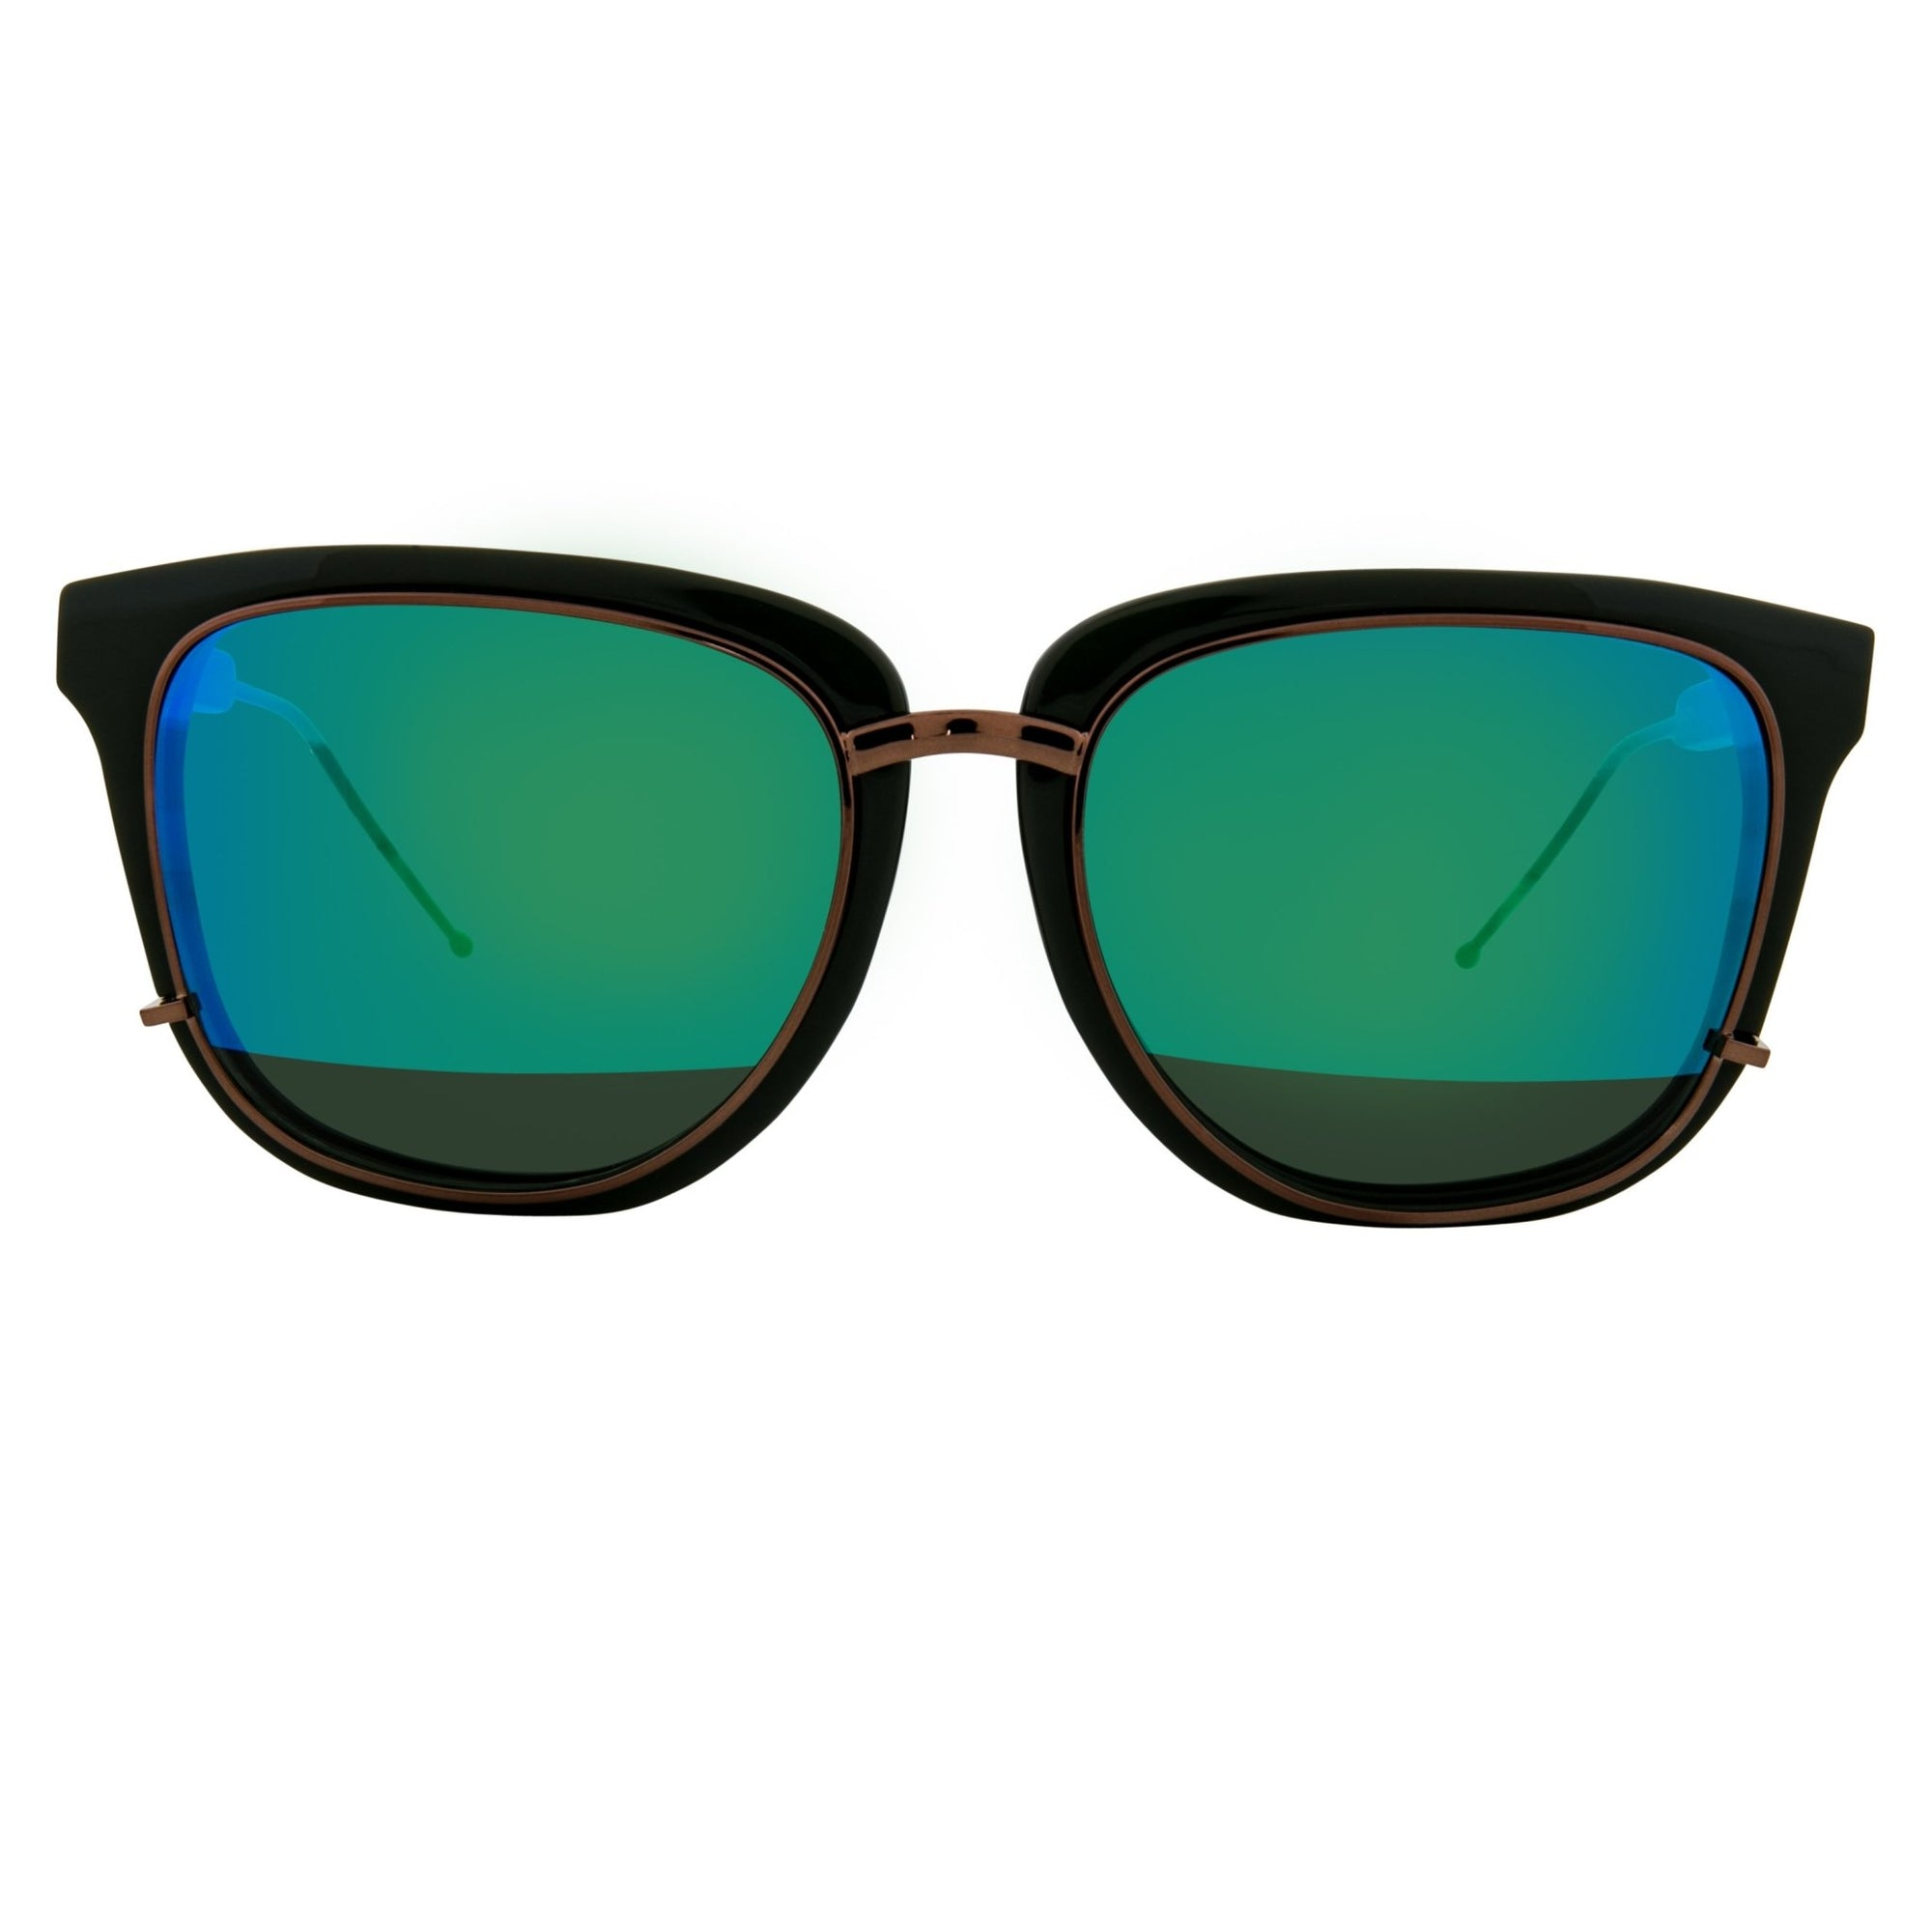 Phillip Lim Sunglasses Hunter Green and Bronze D-Frame with Green Mirror to Green Lenses Category 3 - PL176C6SUN - Watches & Crystals